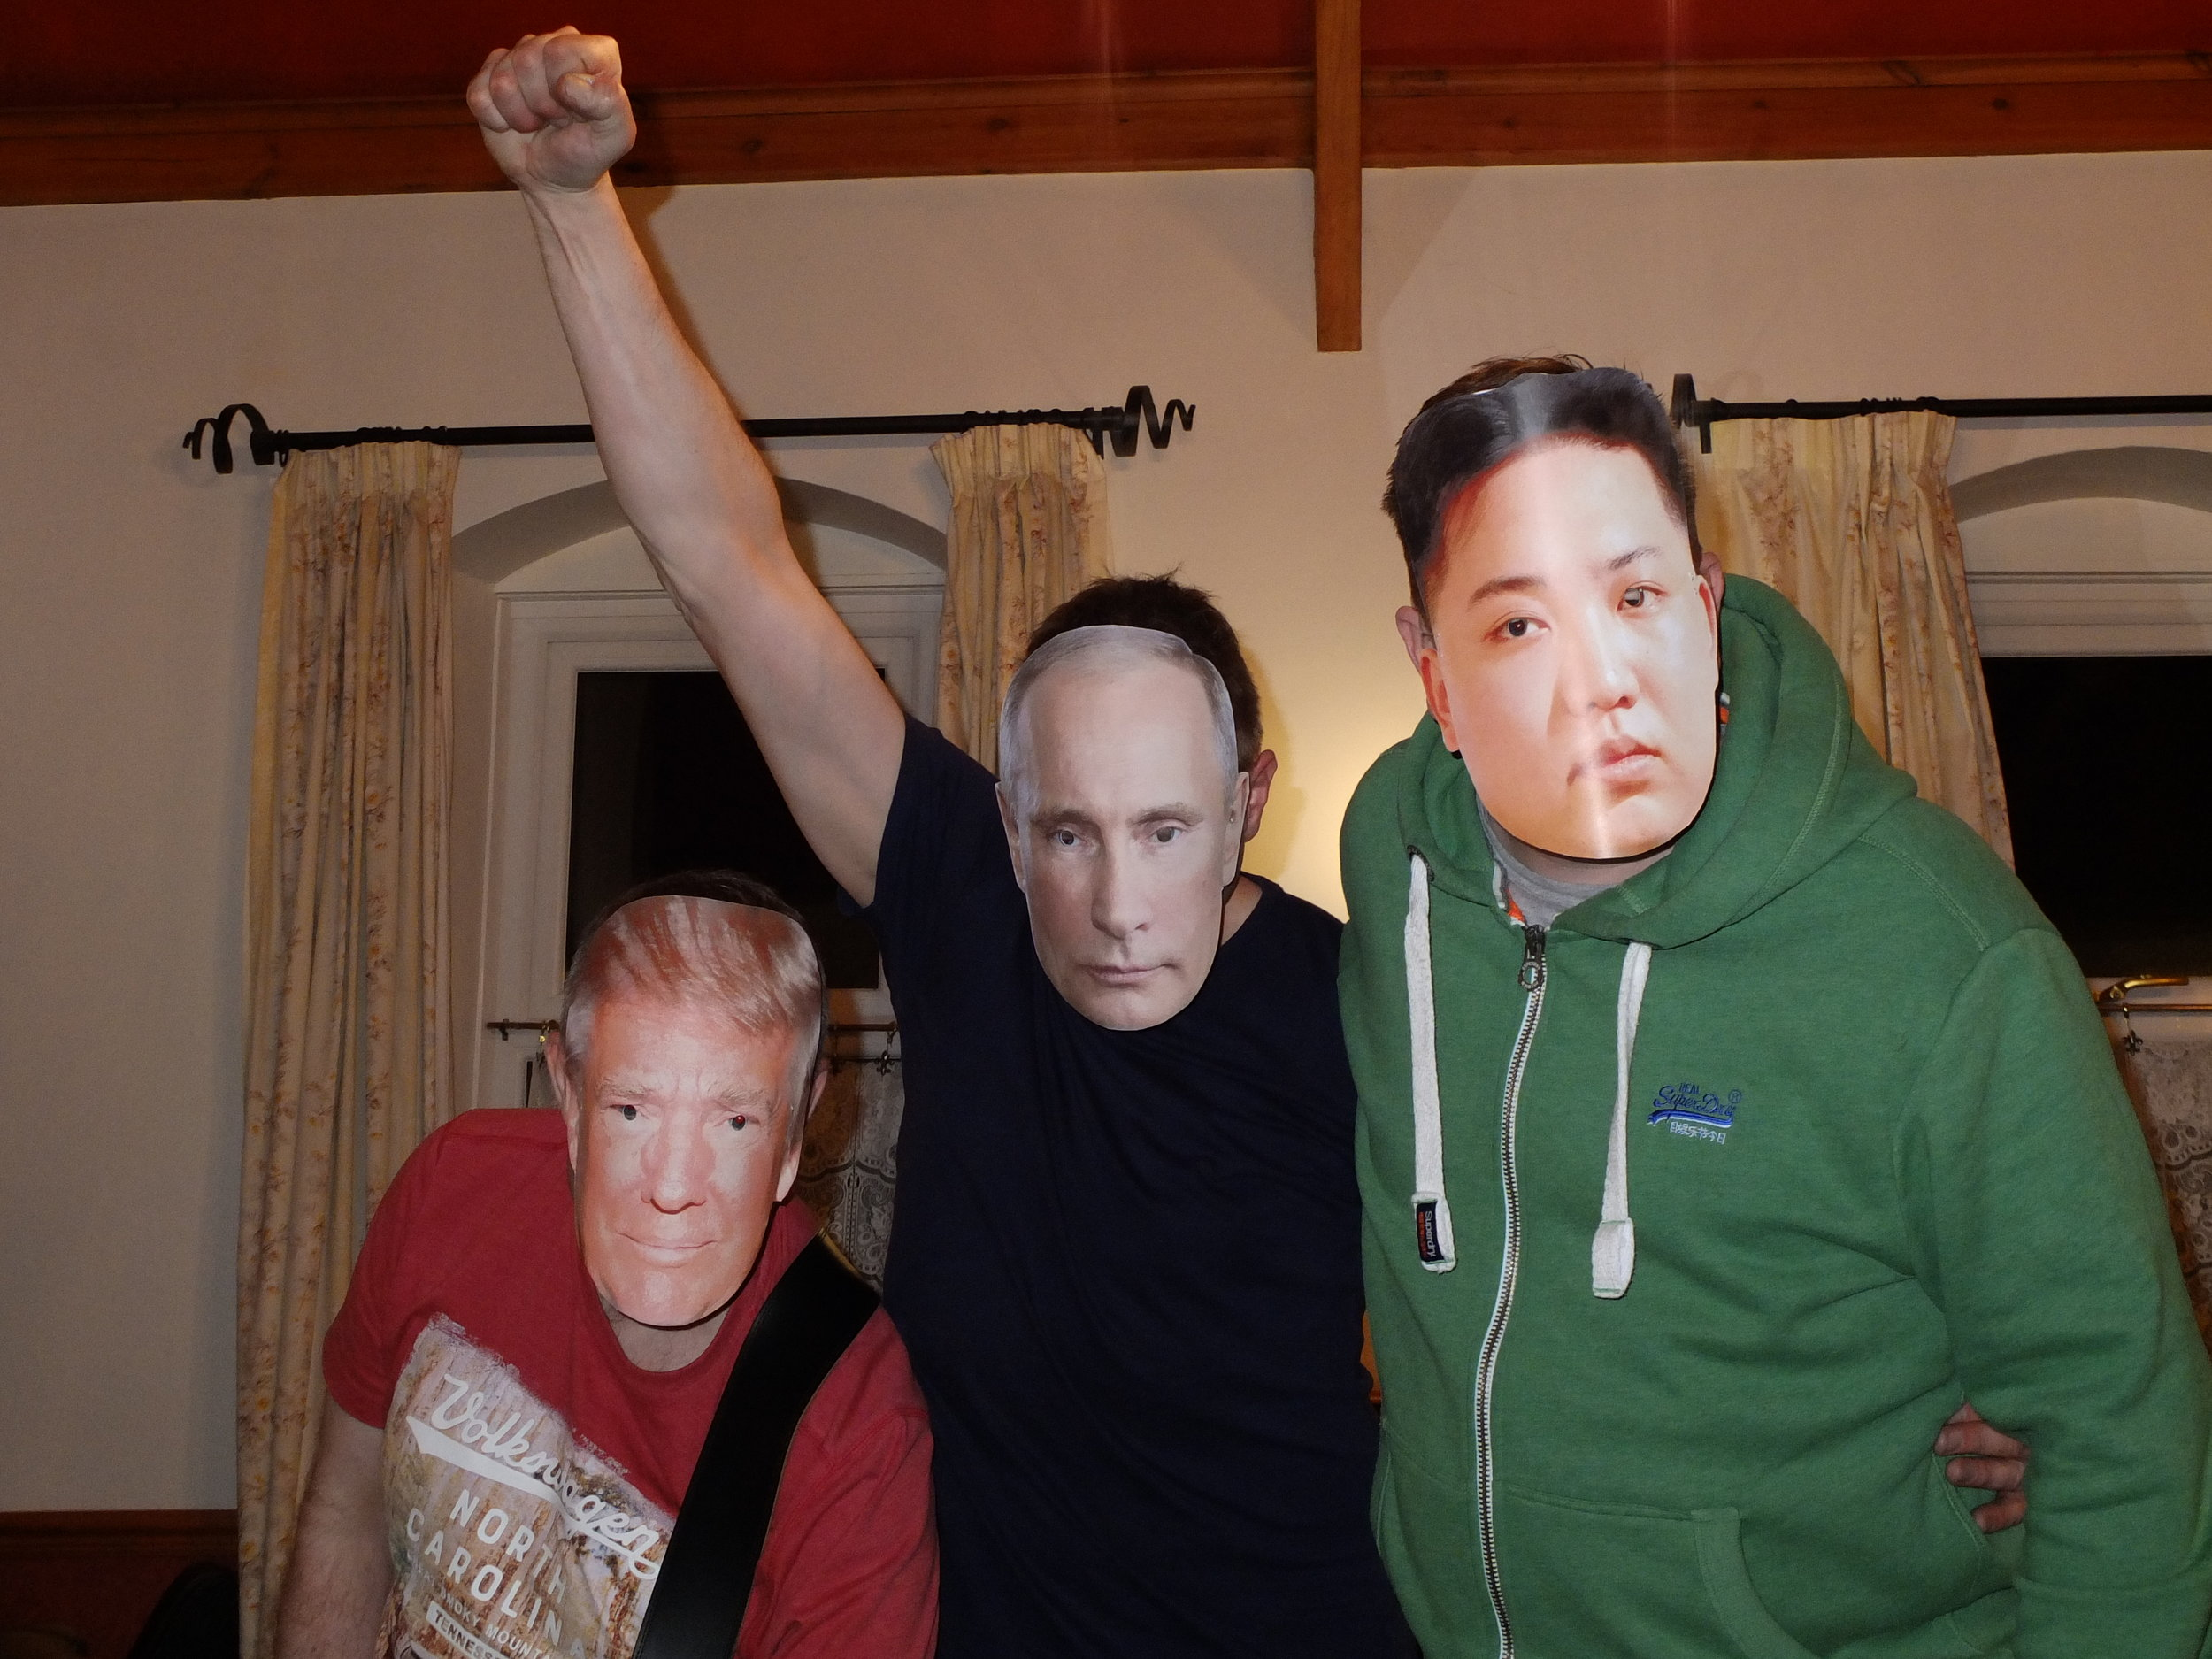 Presidents of the NWO